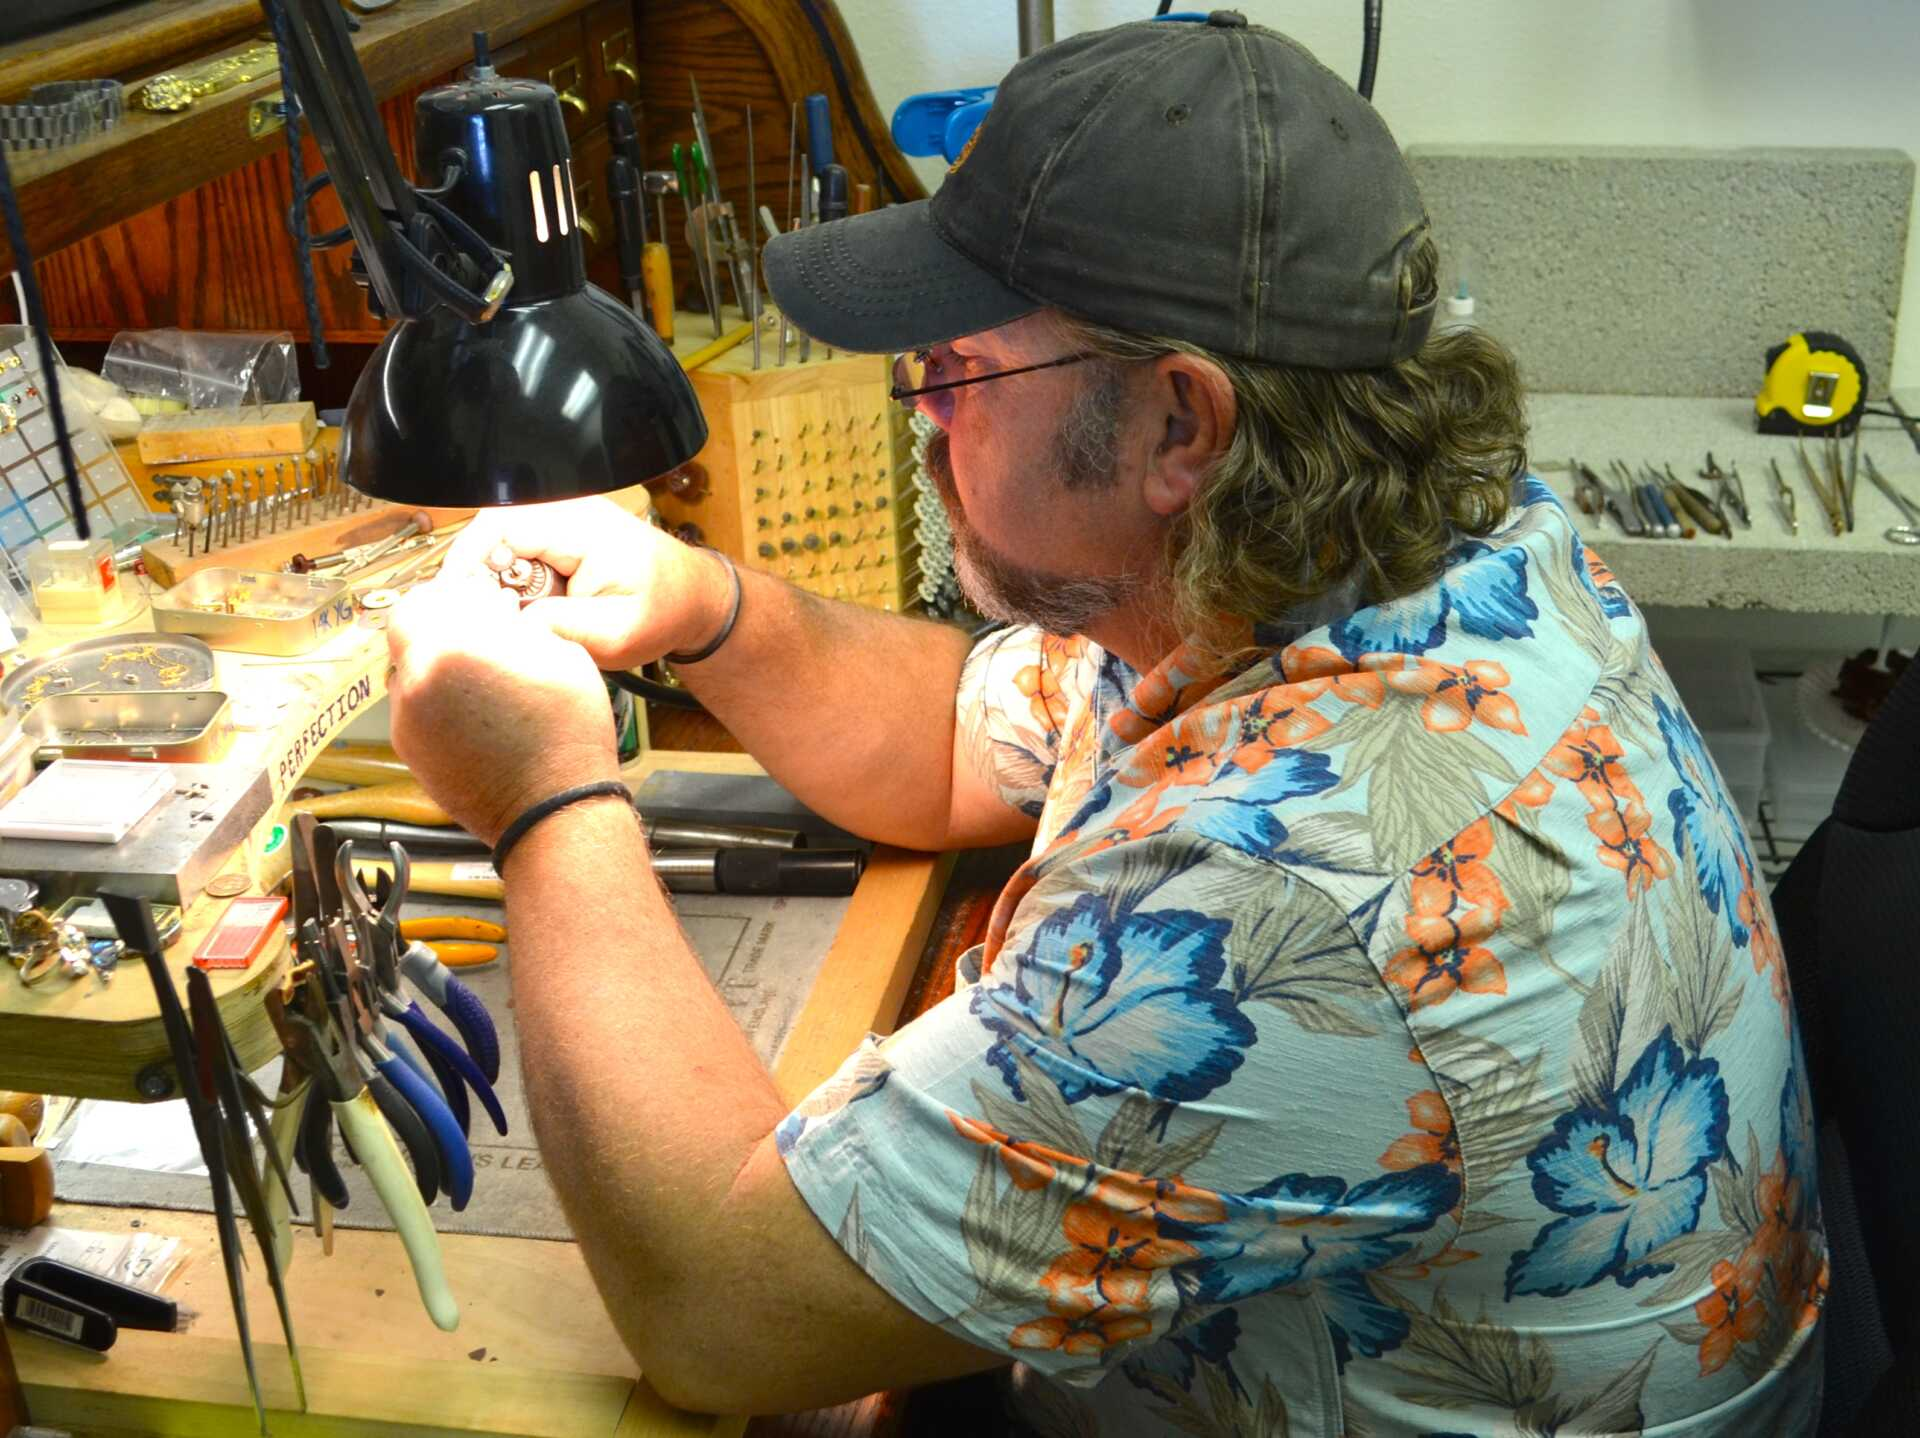 Steve Burrus, our Artisan Jeweler, hard at work repairing jewelry.